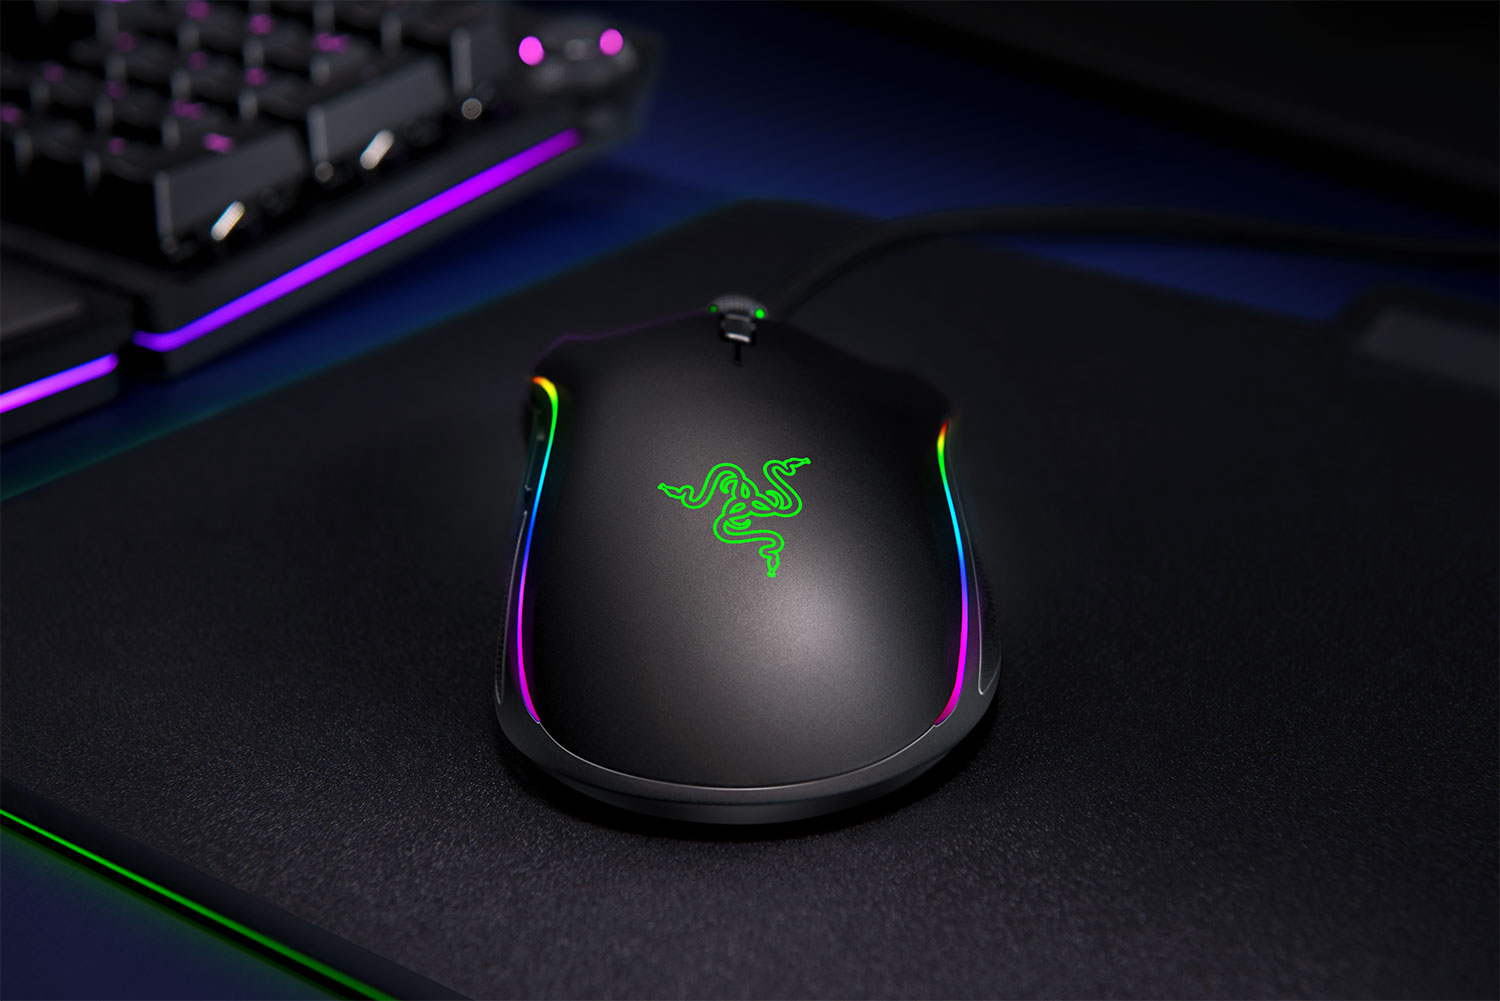 Razer upgrades its Mamba mouse with an optical sensor for